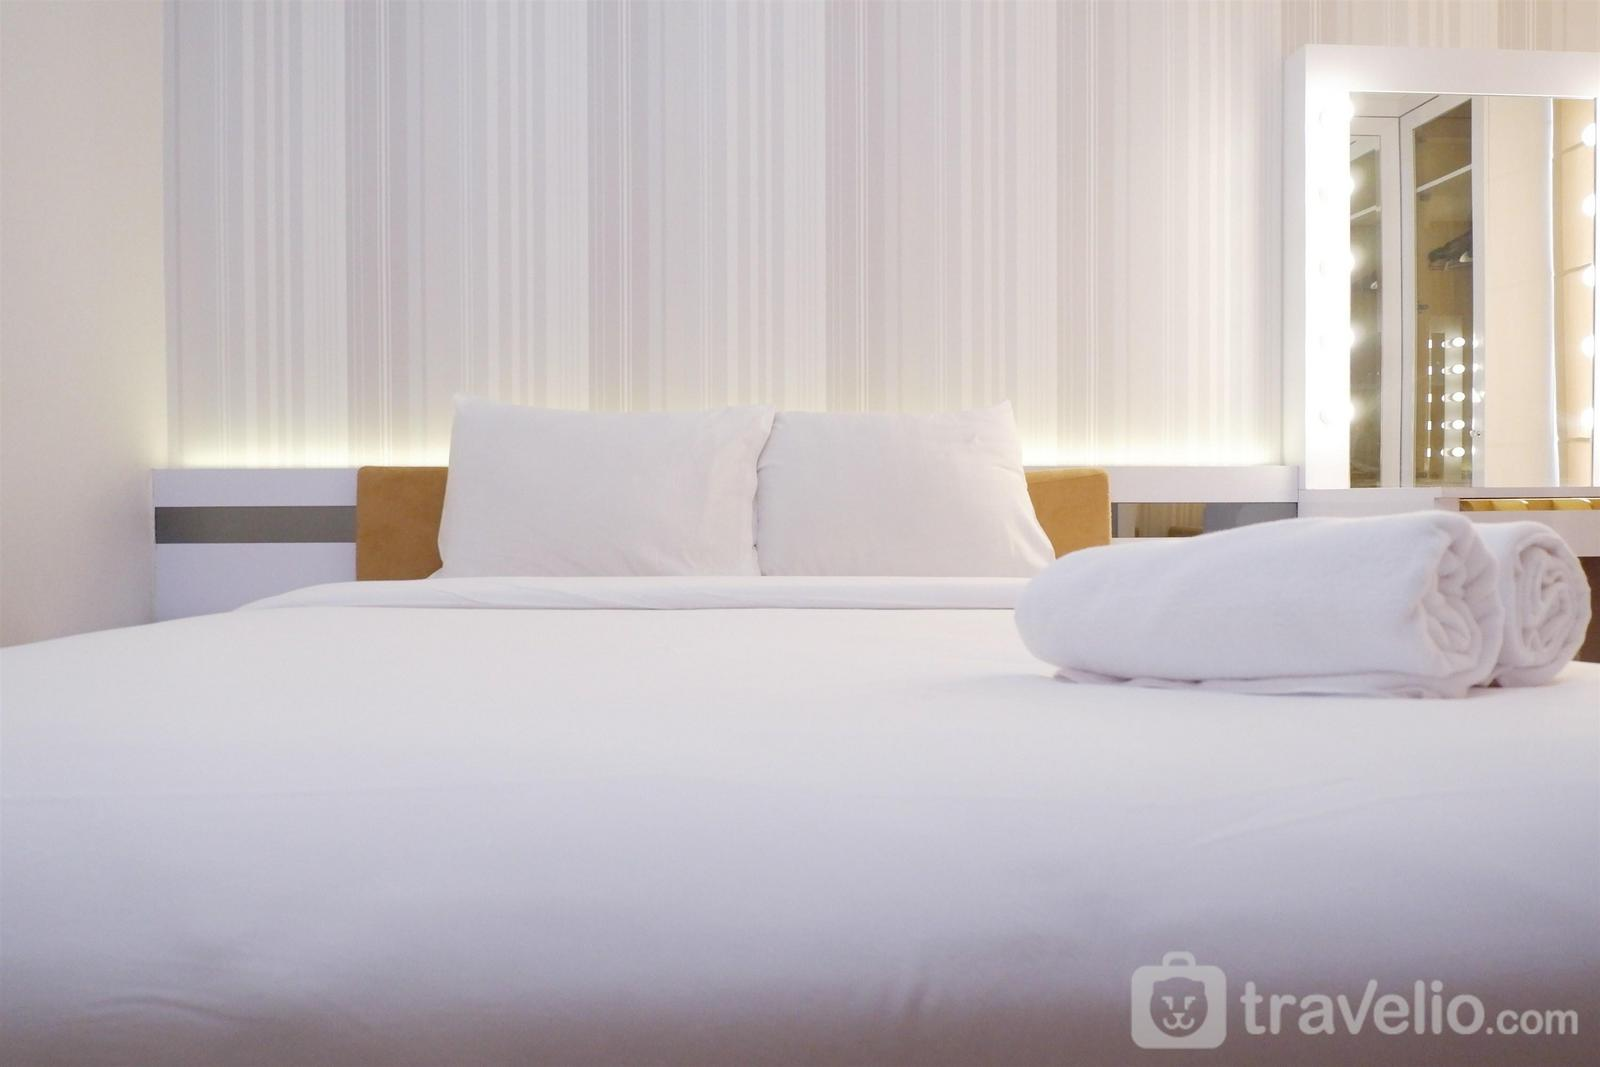 Bassura City Cipinang - Comfort 1BR Apartment with Sofa Bed connected to Mall Bassura City By Travelio